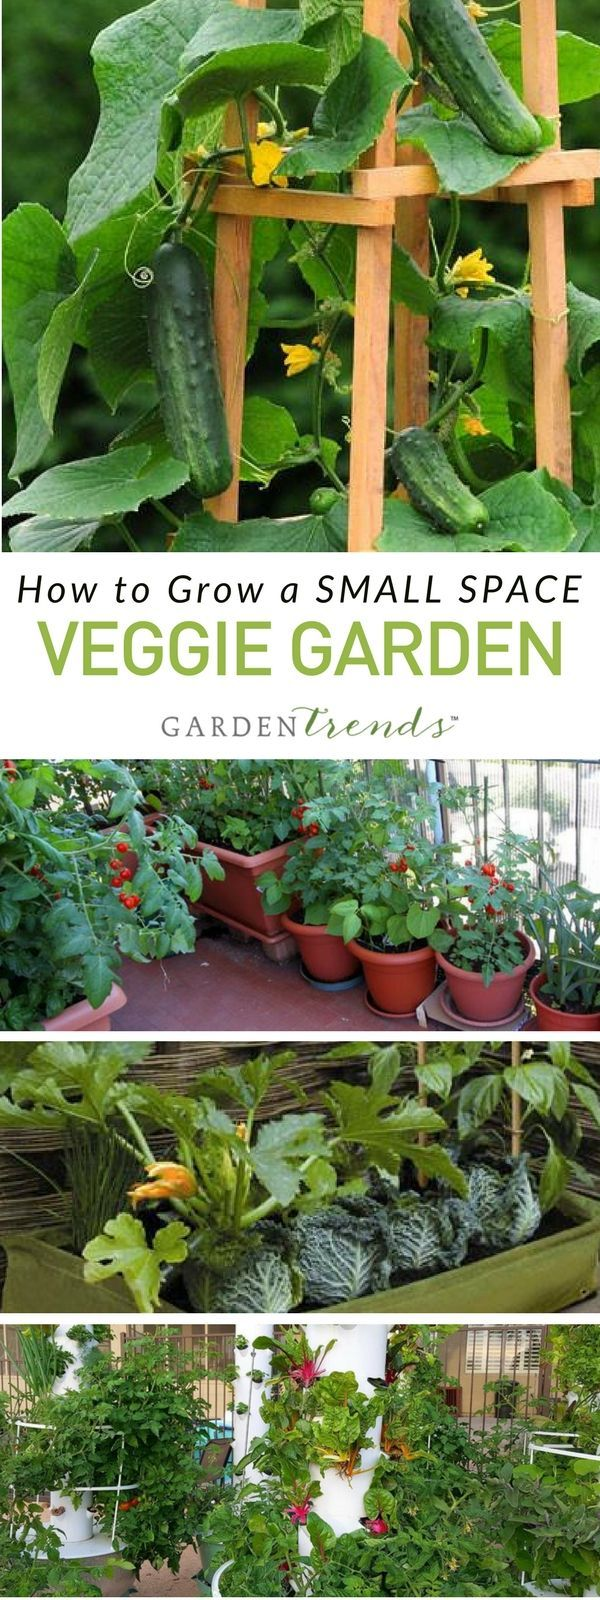 Whether You Live In An Apartment, Condo Or Small Patio Home, Donu0027t Let Your Small  Space Discourage You From Growing An Amazing Vegetable Garden!